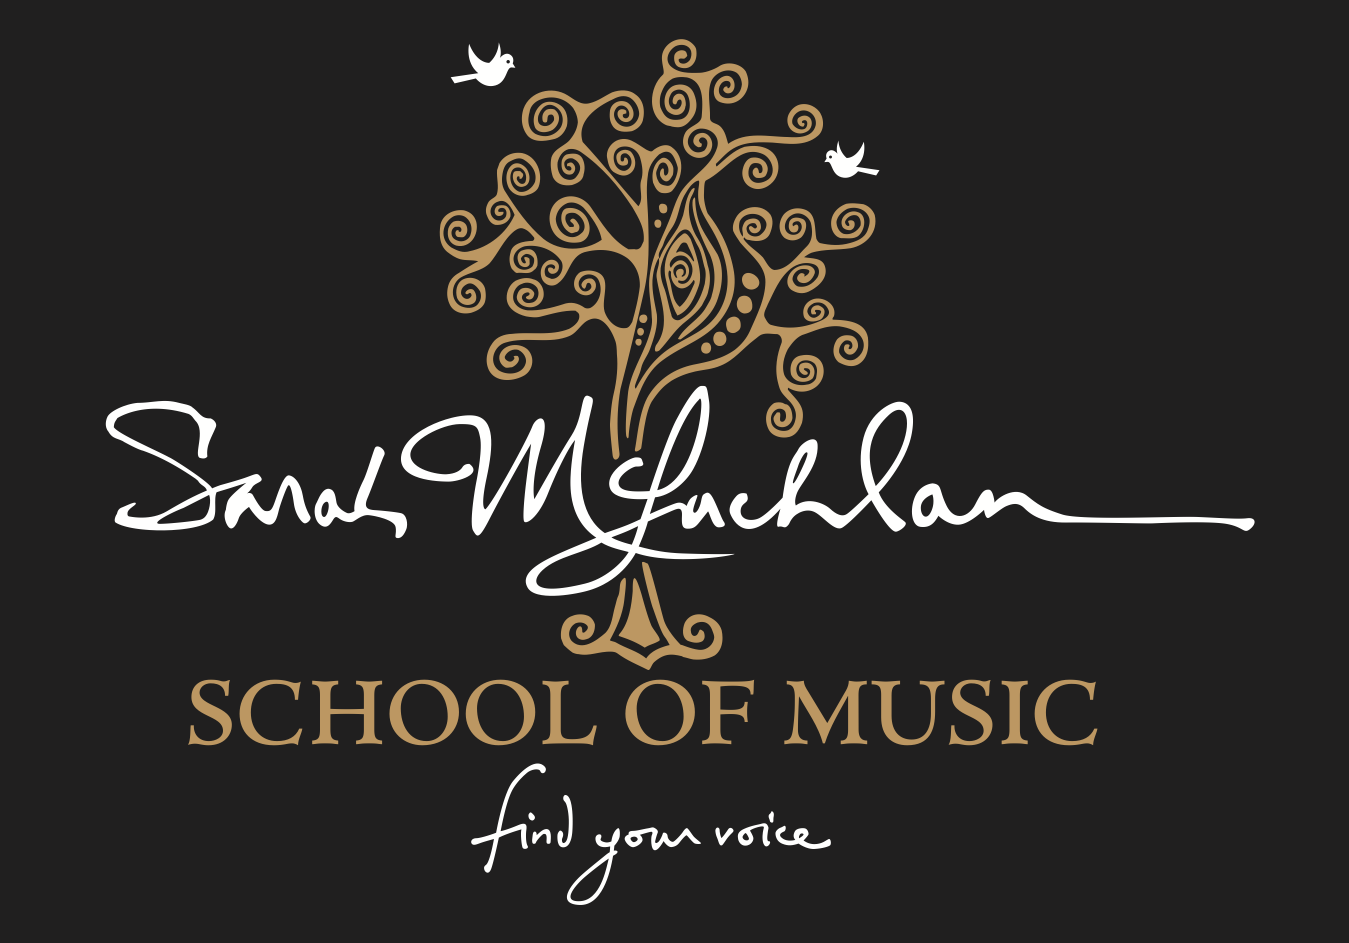 Sarah McLachlan School of Music